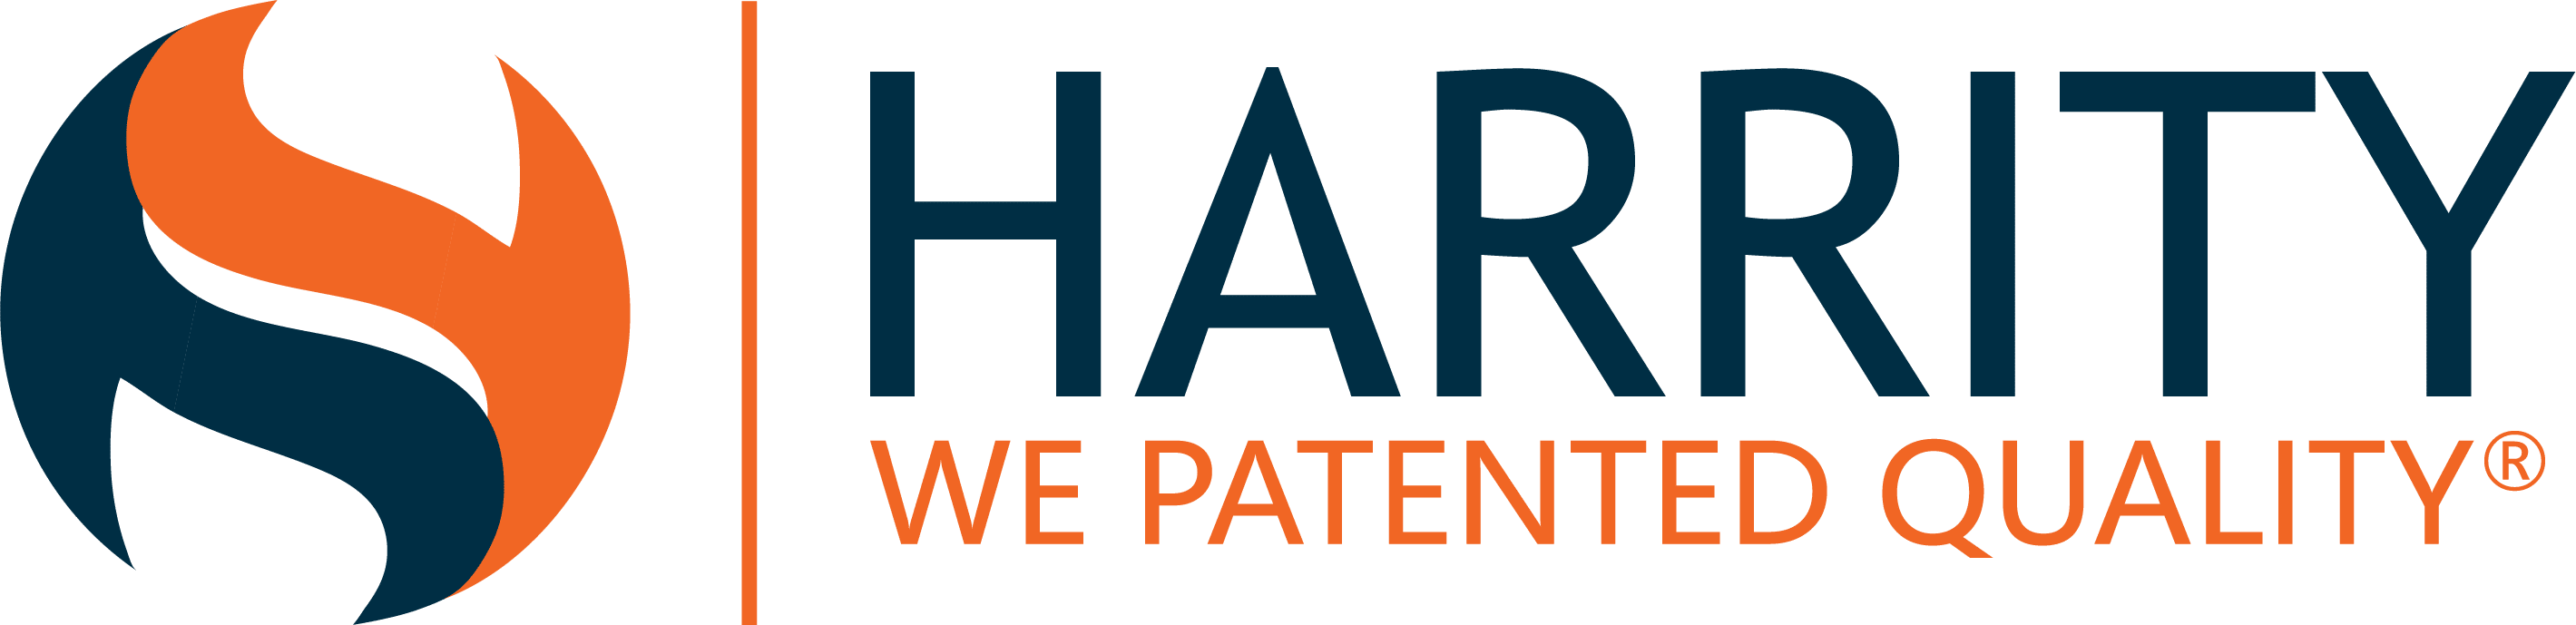 Harrity & Harrity - Patent Preparation & Patent Prosecution